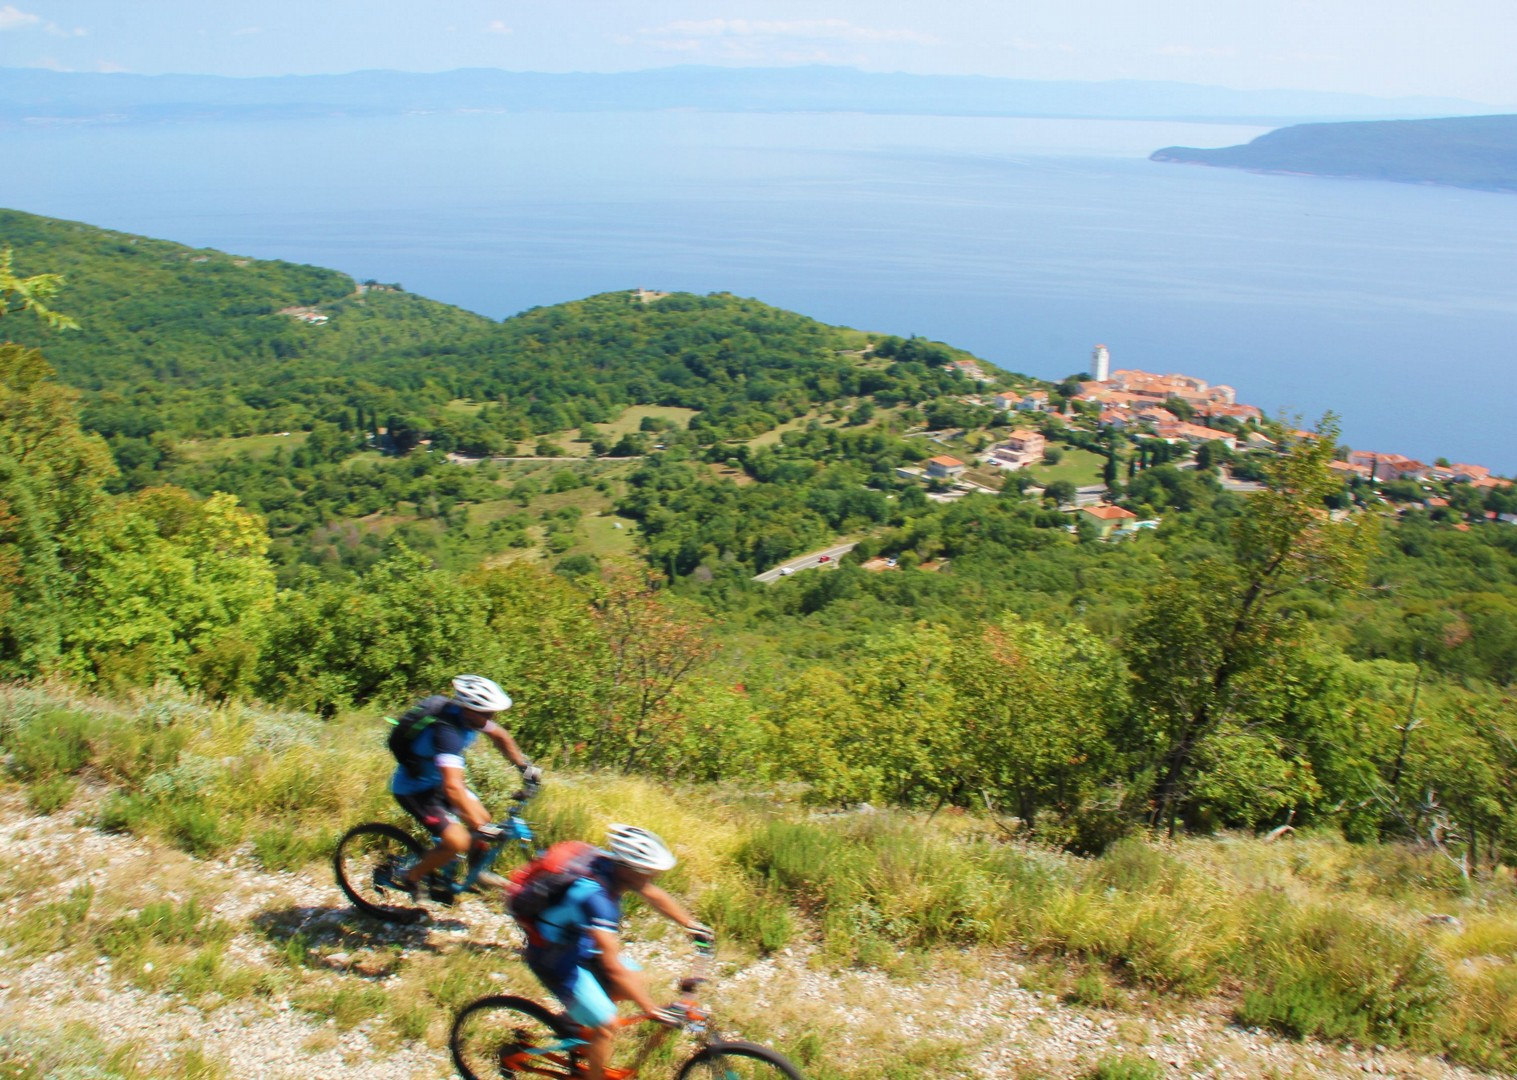 mtb-tour-in-croatia-terra-magica-skedaddle.JPG - NEW! Croatia - Terra Magica - Mountain Biking